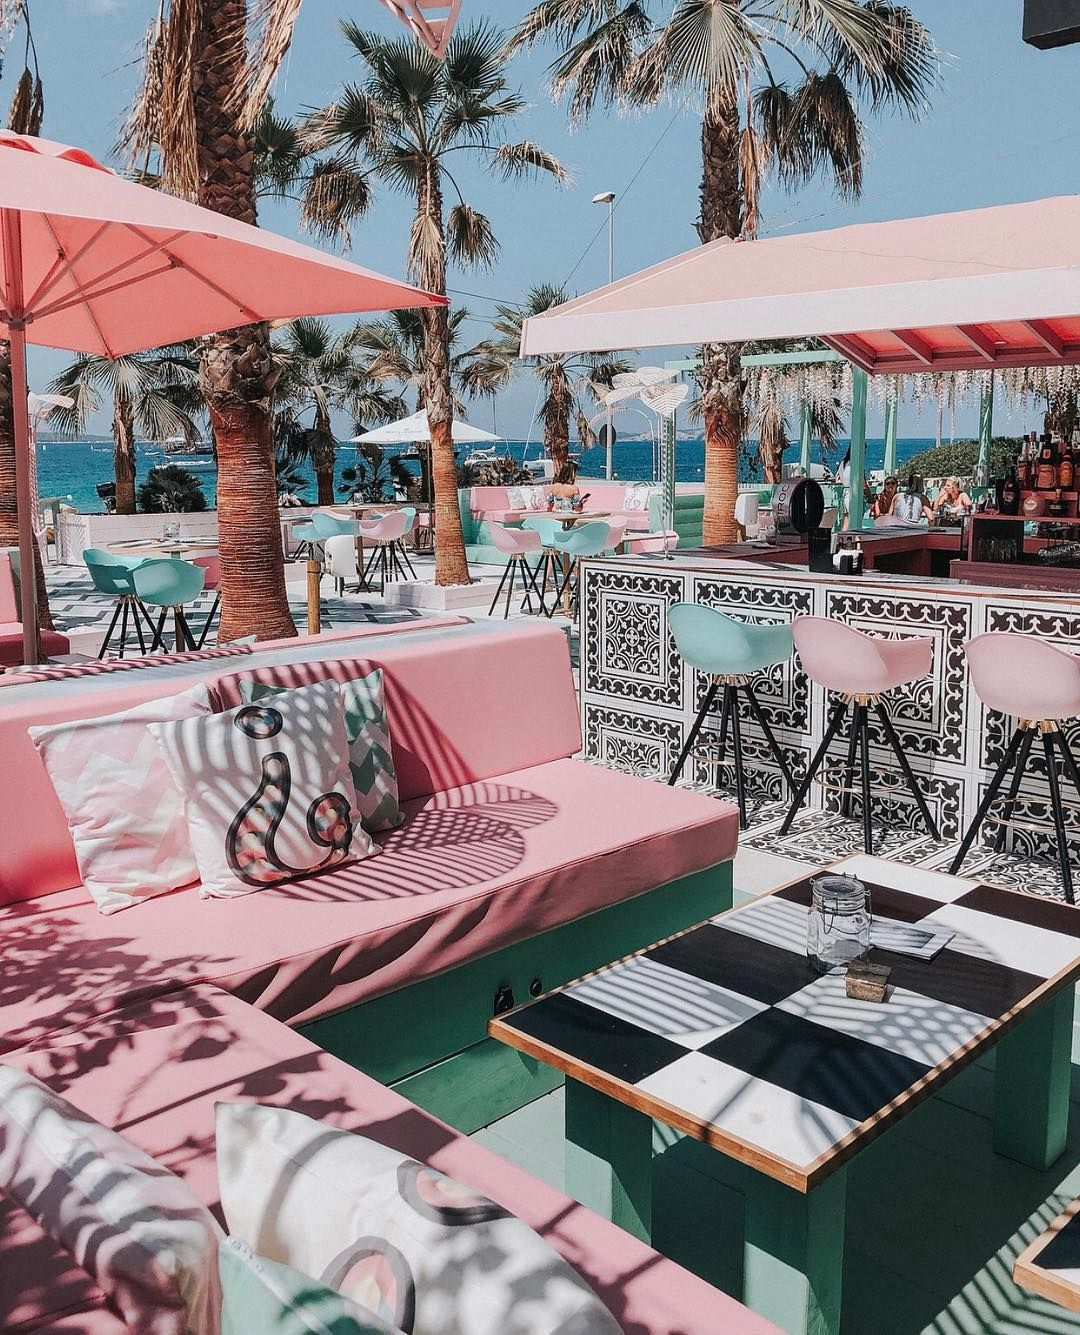 Pink Themed Ibiza Hotel Complete With A Heart Shaped Pool Floats Flower Walls And Flamingo Decor Is World S Most Instagrammable Hotel Hotel Ibiza Ibiza Beach Ibiza Travel